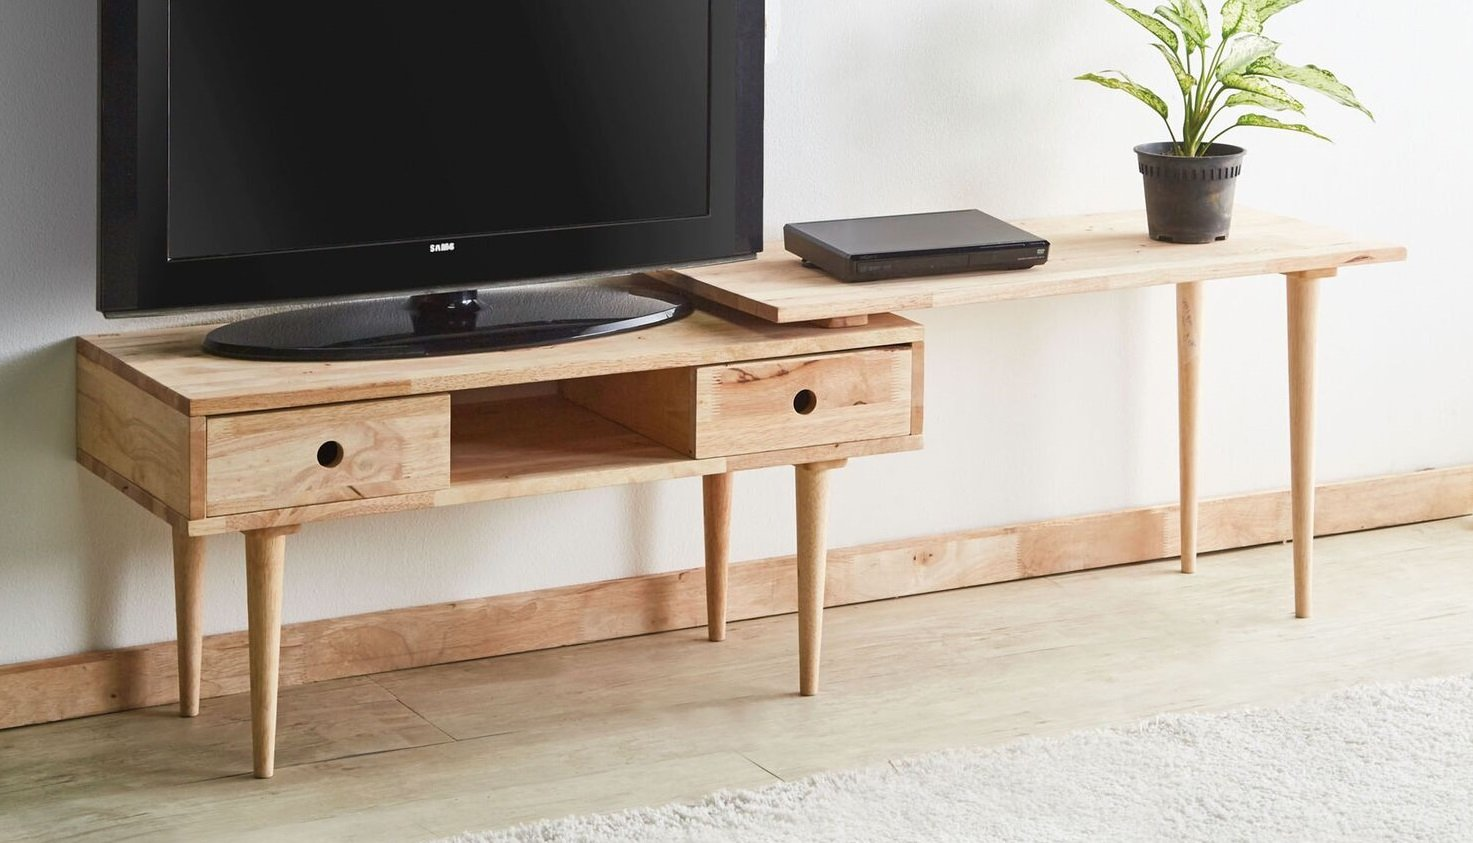 """Major-Q 35"""" Natural Wooden TV Stand/Coffee Table with Extension - Major-Q is a registered furniture trademark brand. Please search Major-Q for more high quality furniture related products All Major-Q products will be covered with limited Major-Q . Please buy with Confidence. Tv stand W/extension Top, 35"""" X 16"""" X 19""""H - tv-stands, living-room-furniture, living-room - 71pZ21j%2BHnL -"""